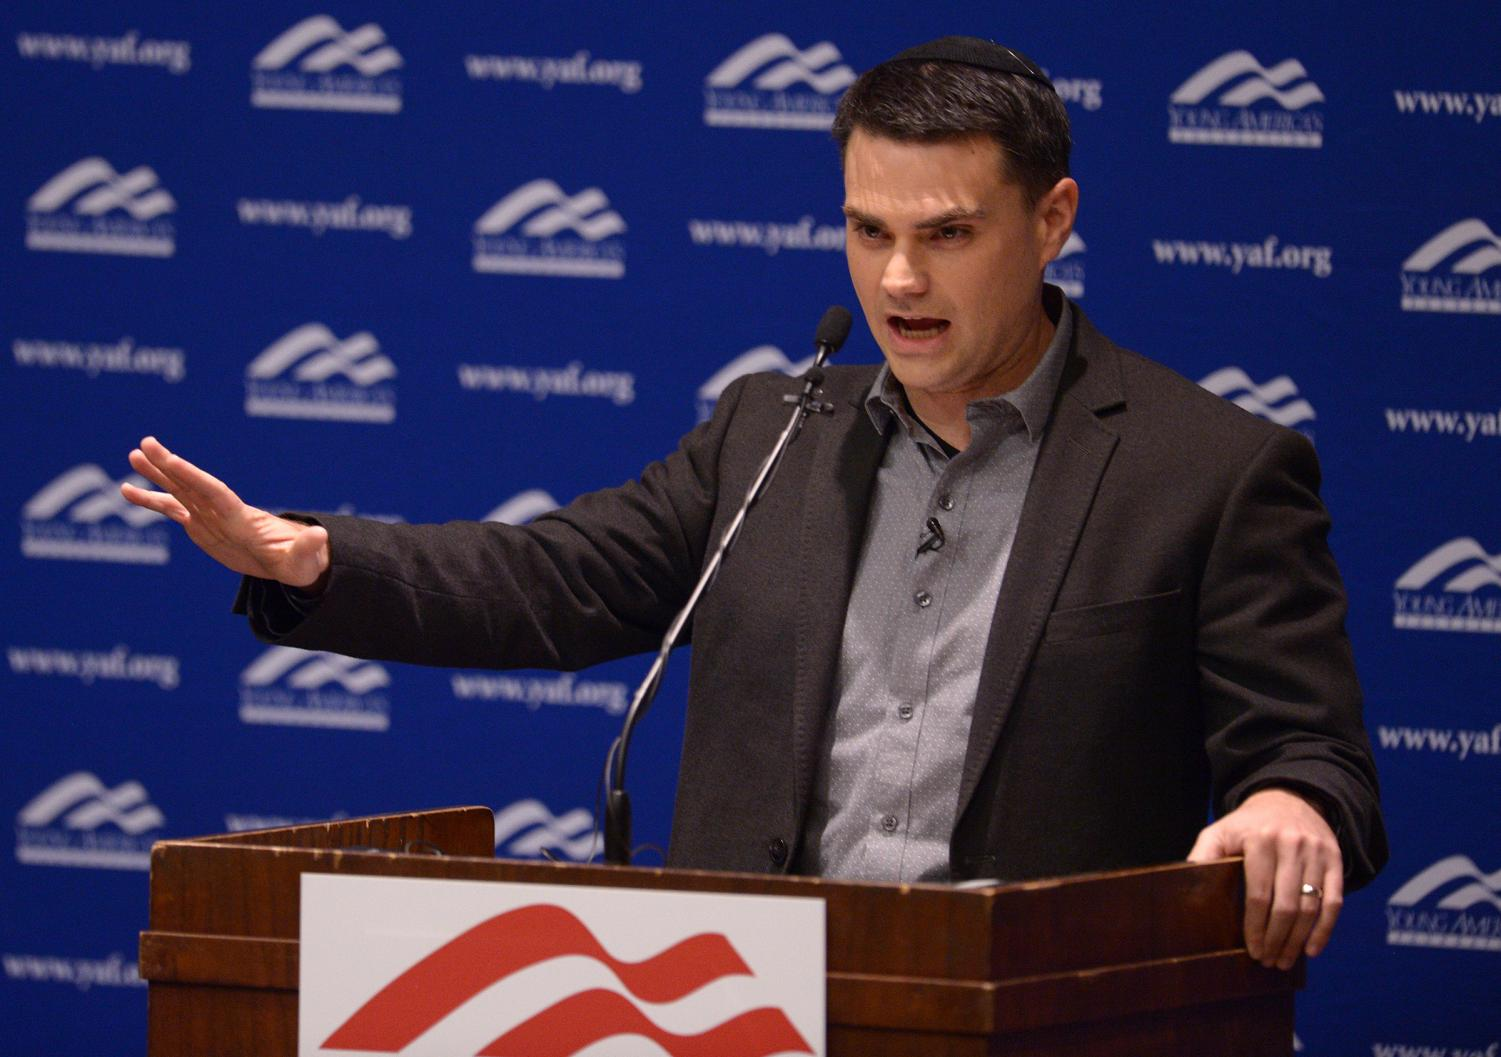 (Leah Hogsten | The Salt Lake Tribune/pool) Controversial conservative commentator Ben Shapiro, editor-in-chief of the Daily Wire and former editor-at-large of Breitbart News, addresses the student group Young Americans for Freedom at the University of Utah's Social and Behavioral Sciences Lecture Hall, Wednesday, September 27, 2017. Shapiro was invited by the student organization sponsored by Young America's Foundation, the parent organization over campus Young Americans for Freedom chapters, not the university itself.